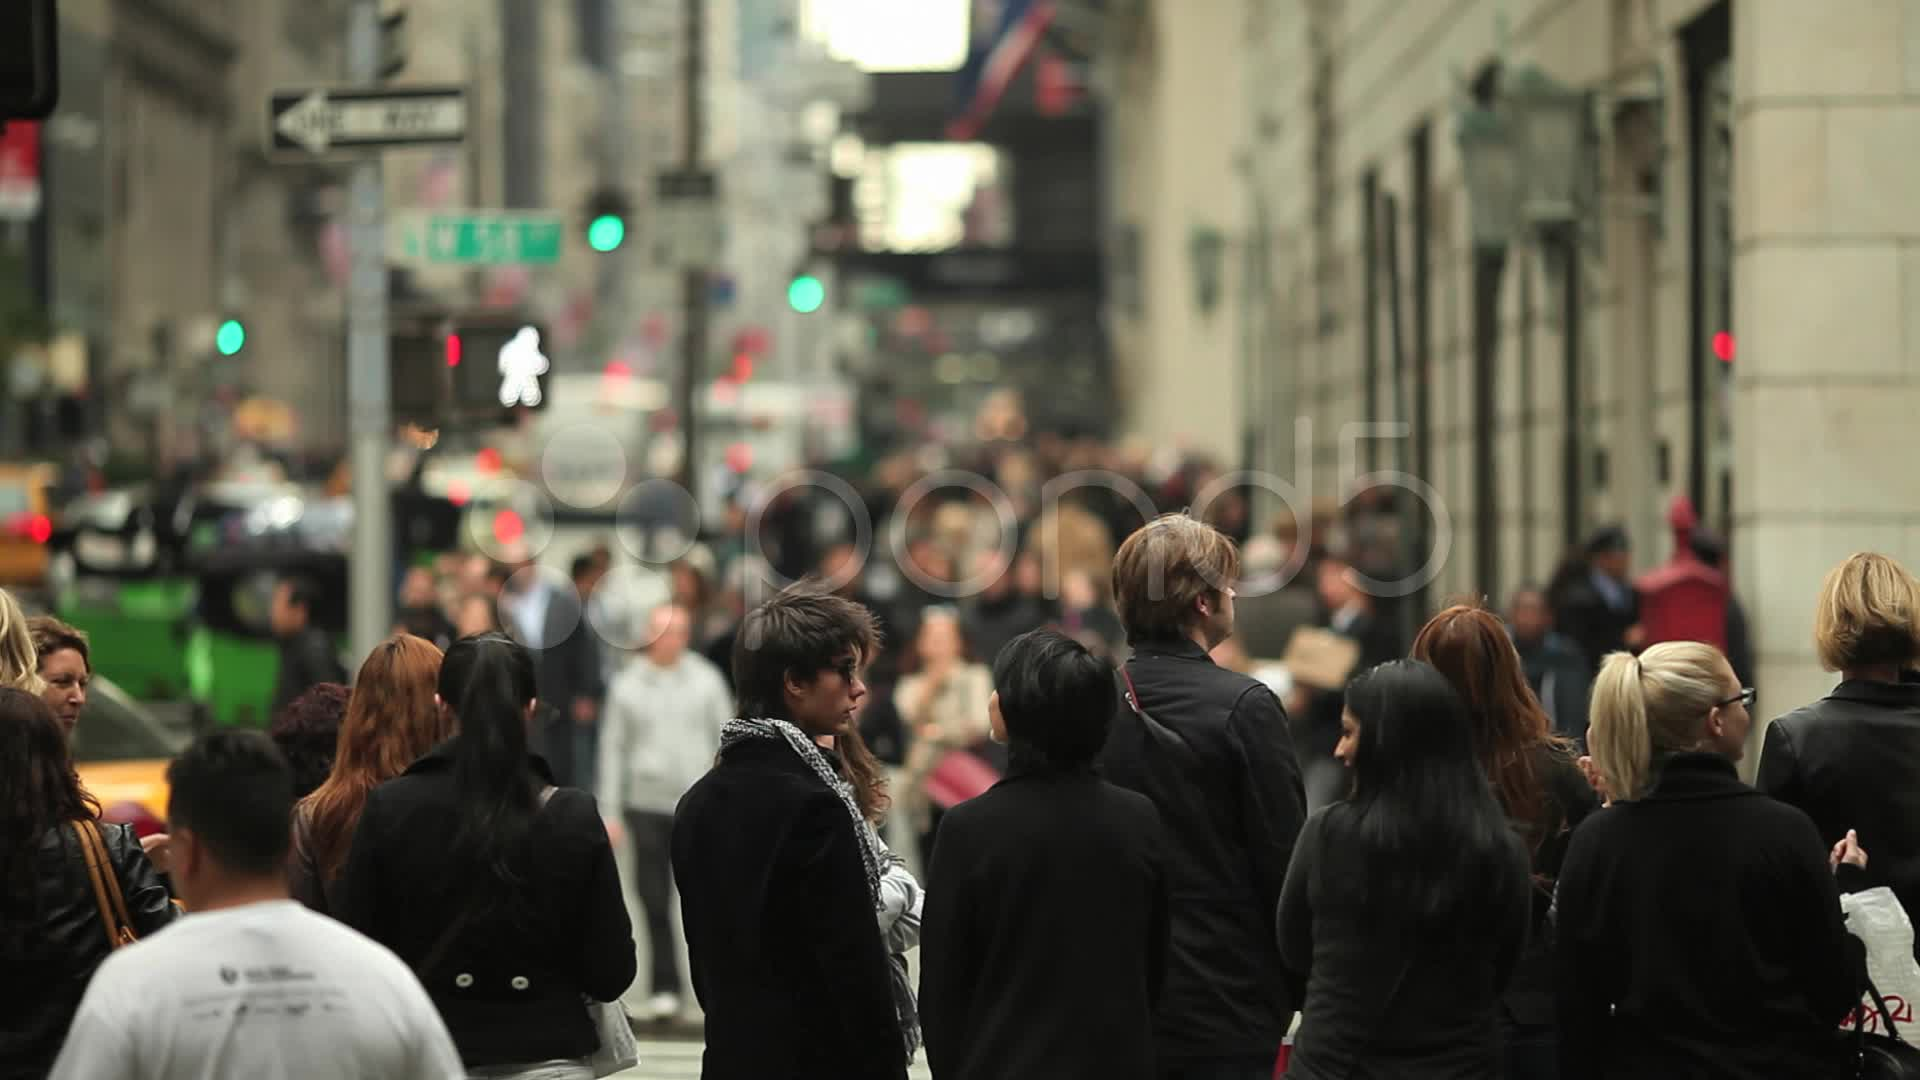 Crowd of People Walking in New York City